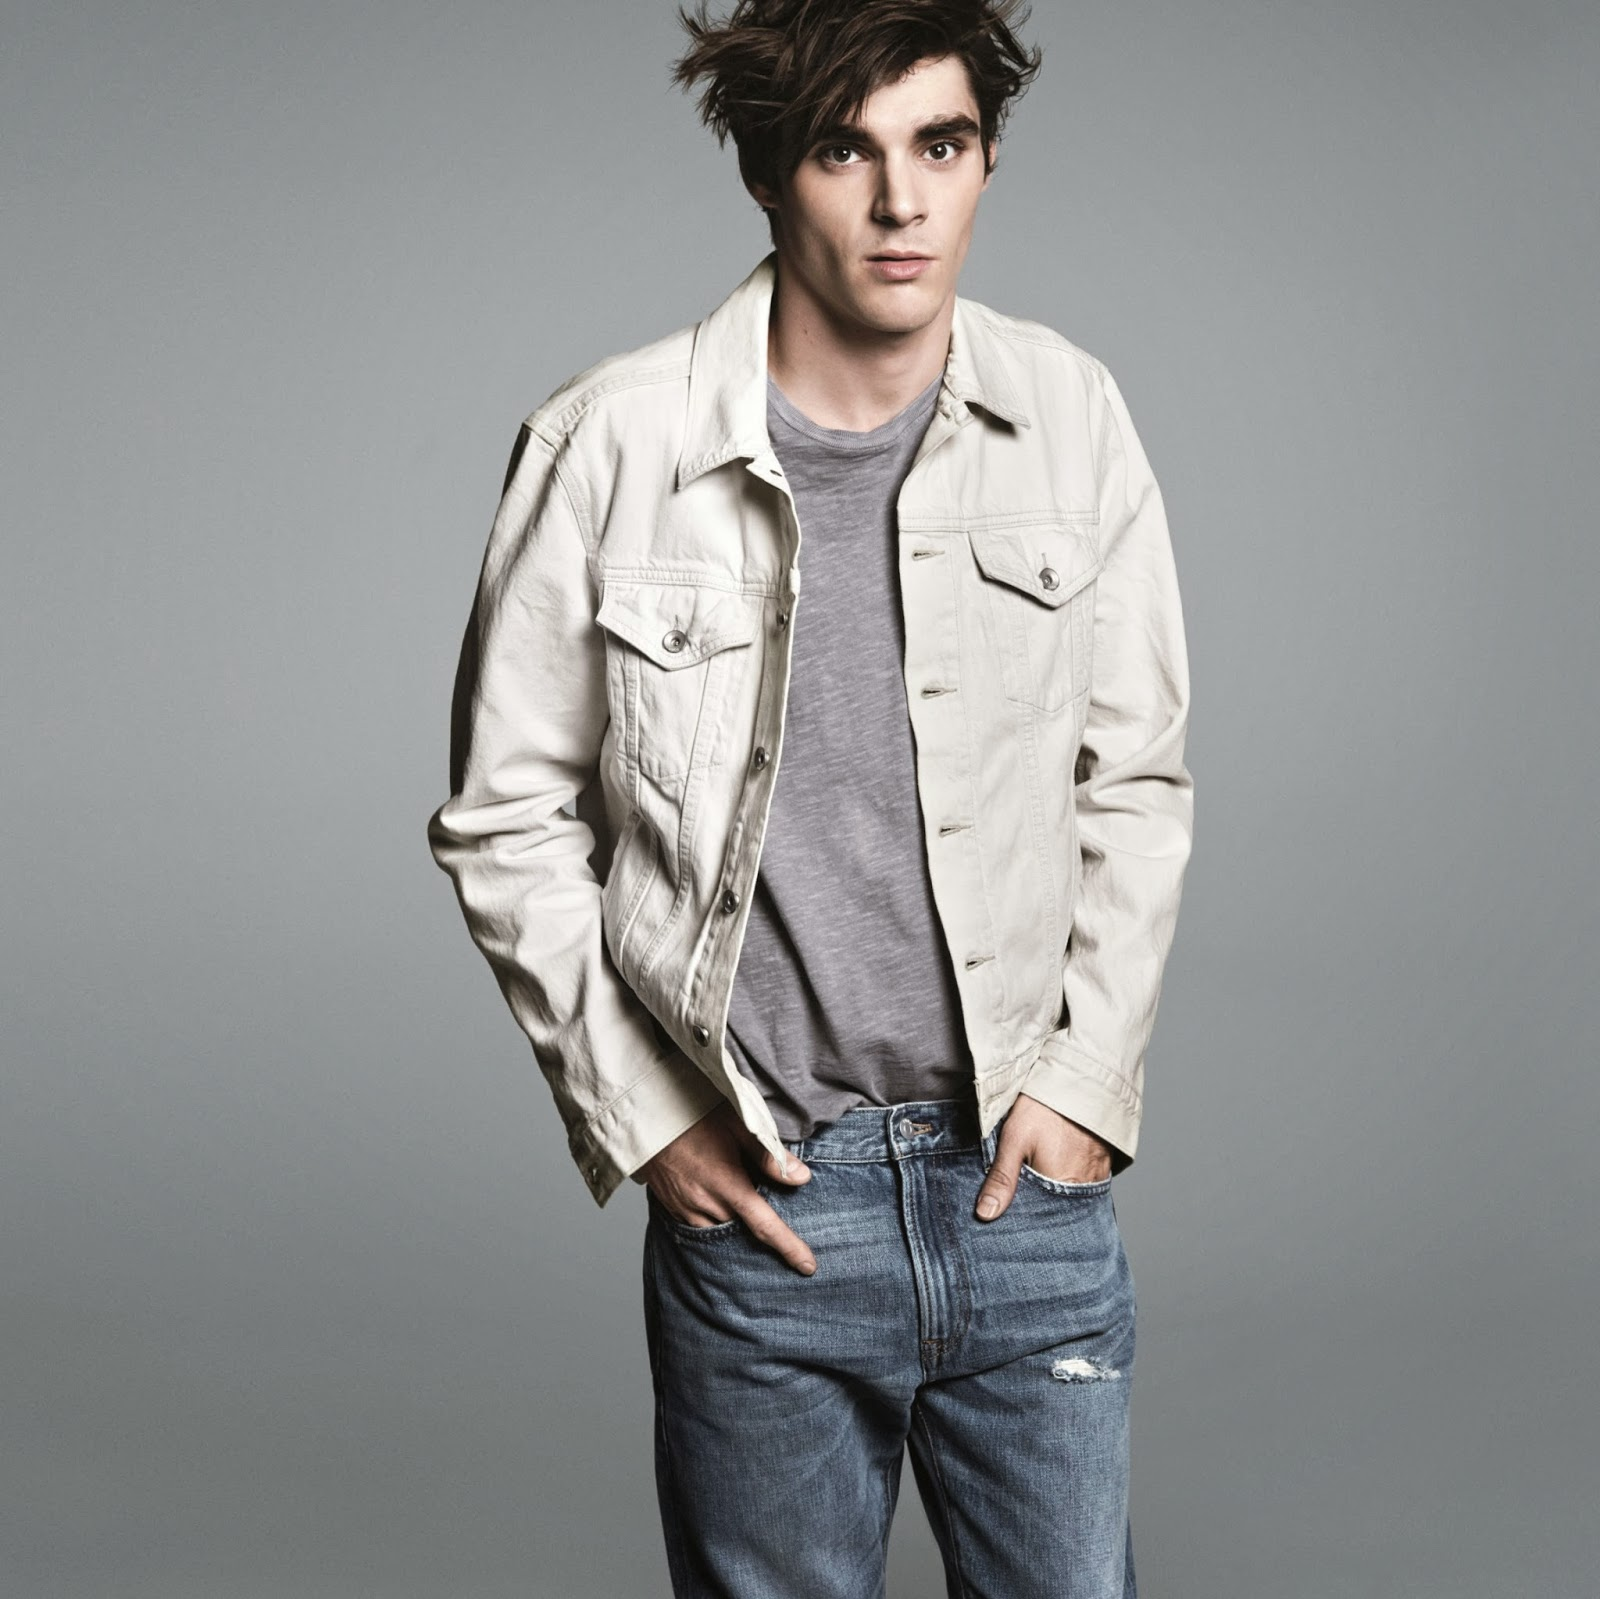 Theophilus London, RJ Mitte and Ernest Green for GAP 'Lived-In' Campaign